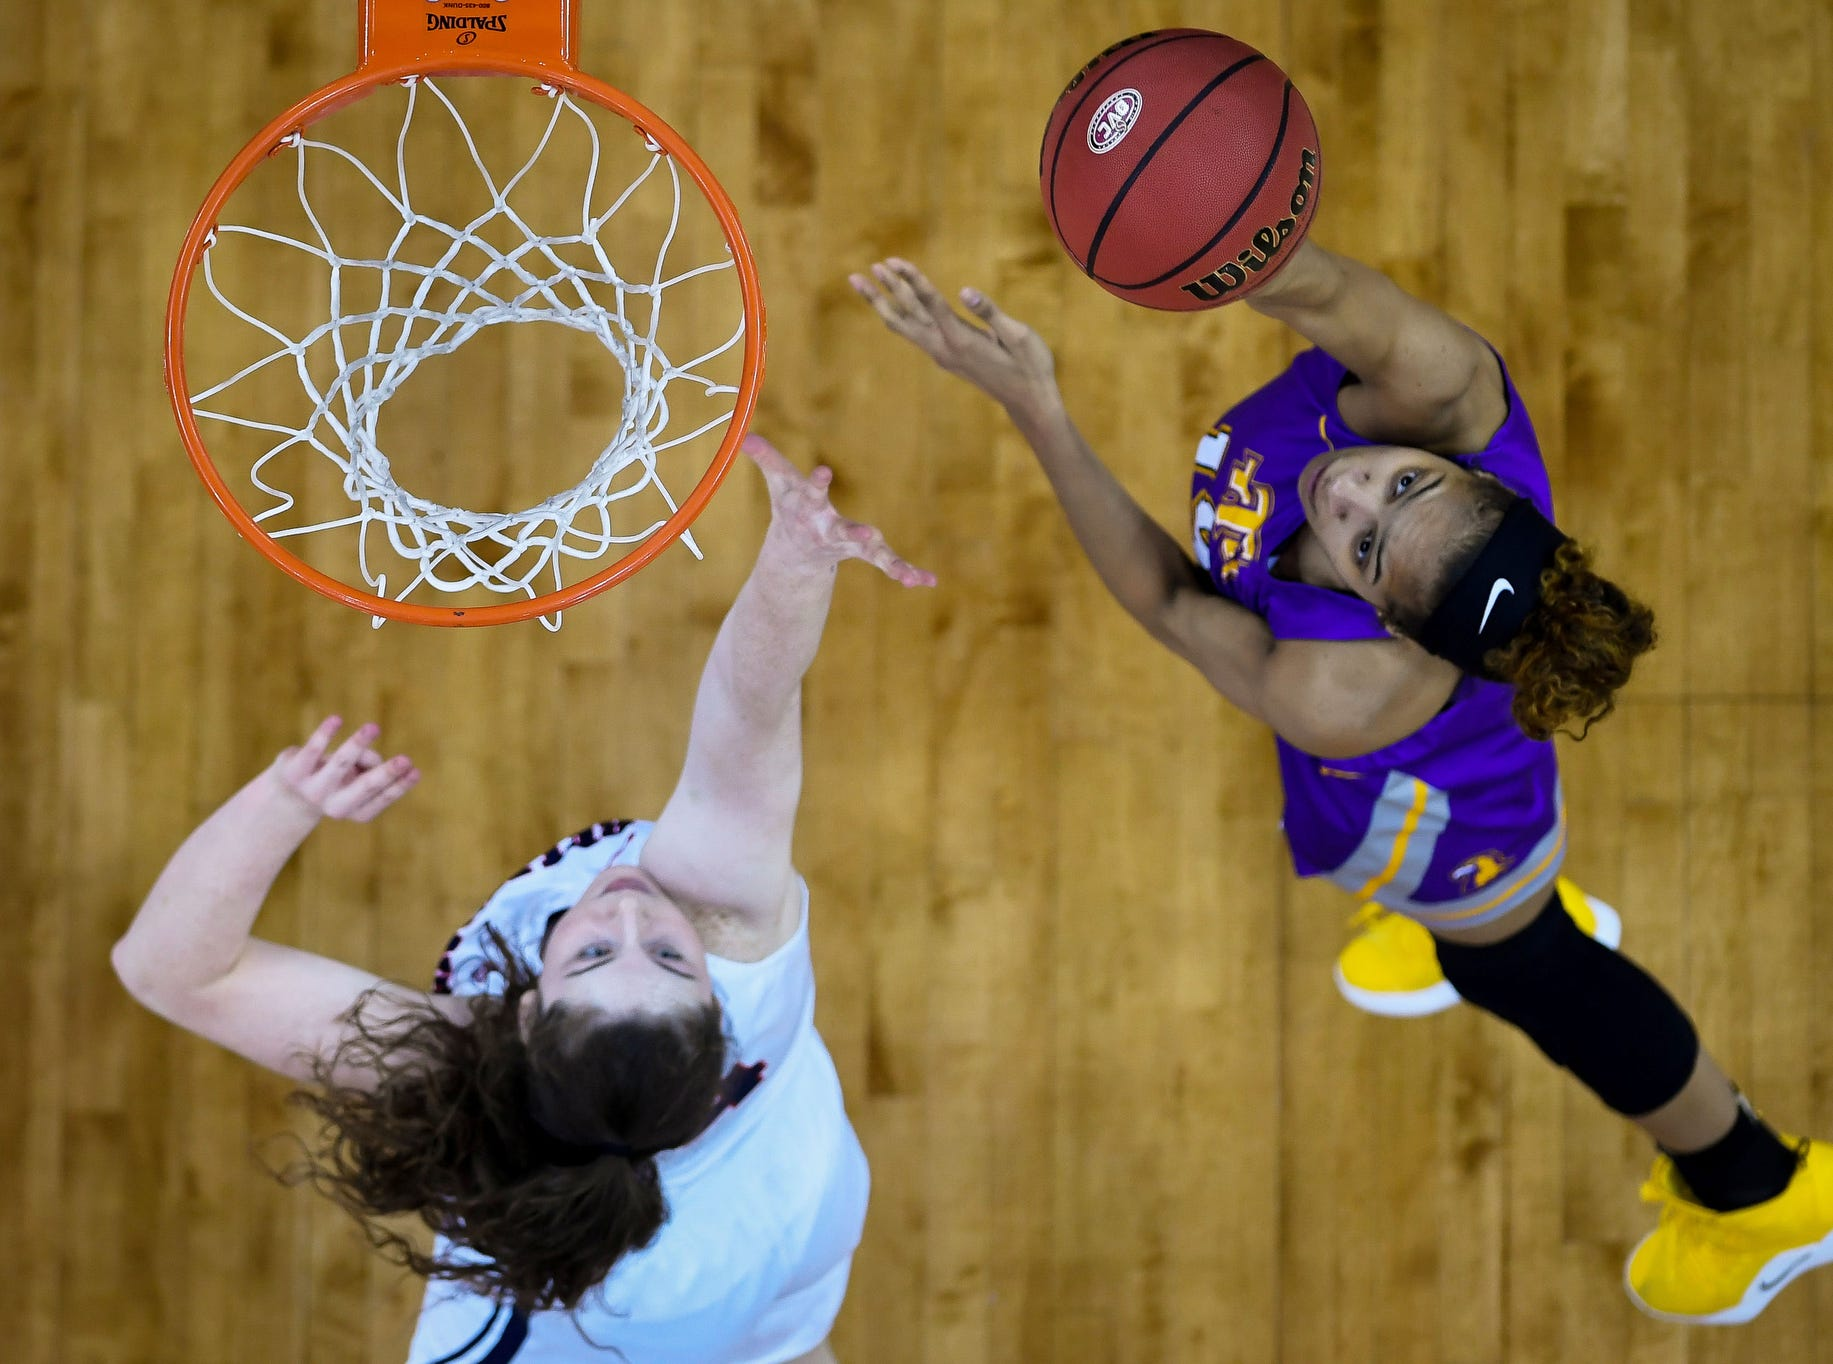 Tennessee Tech's Anacia Wilkinson (15) shoots over Belmont Bruins' Jamilyn Kinney (14) as the Belmont Bruins play the Tennessee Tech Golden Eagles in the Ohio Valley Conference semi-finals at the Evansville Ford Center Friday, March 8, 2019.